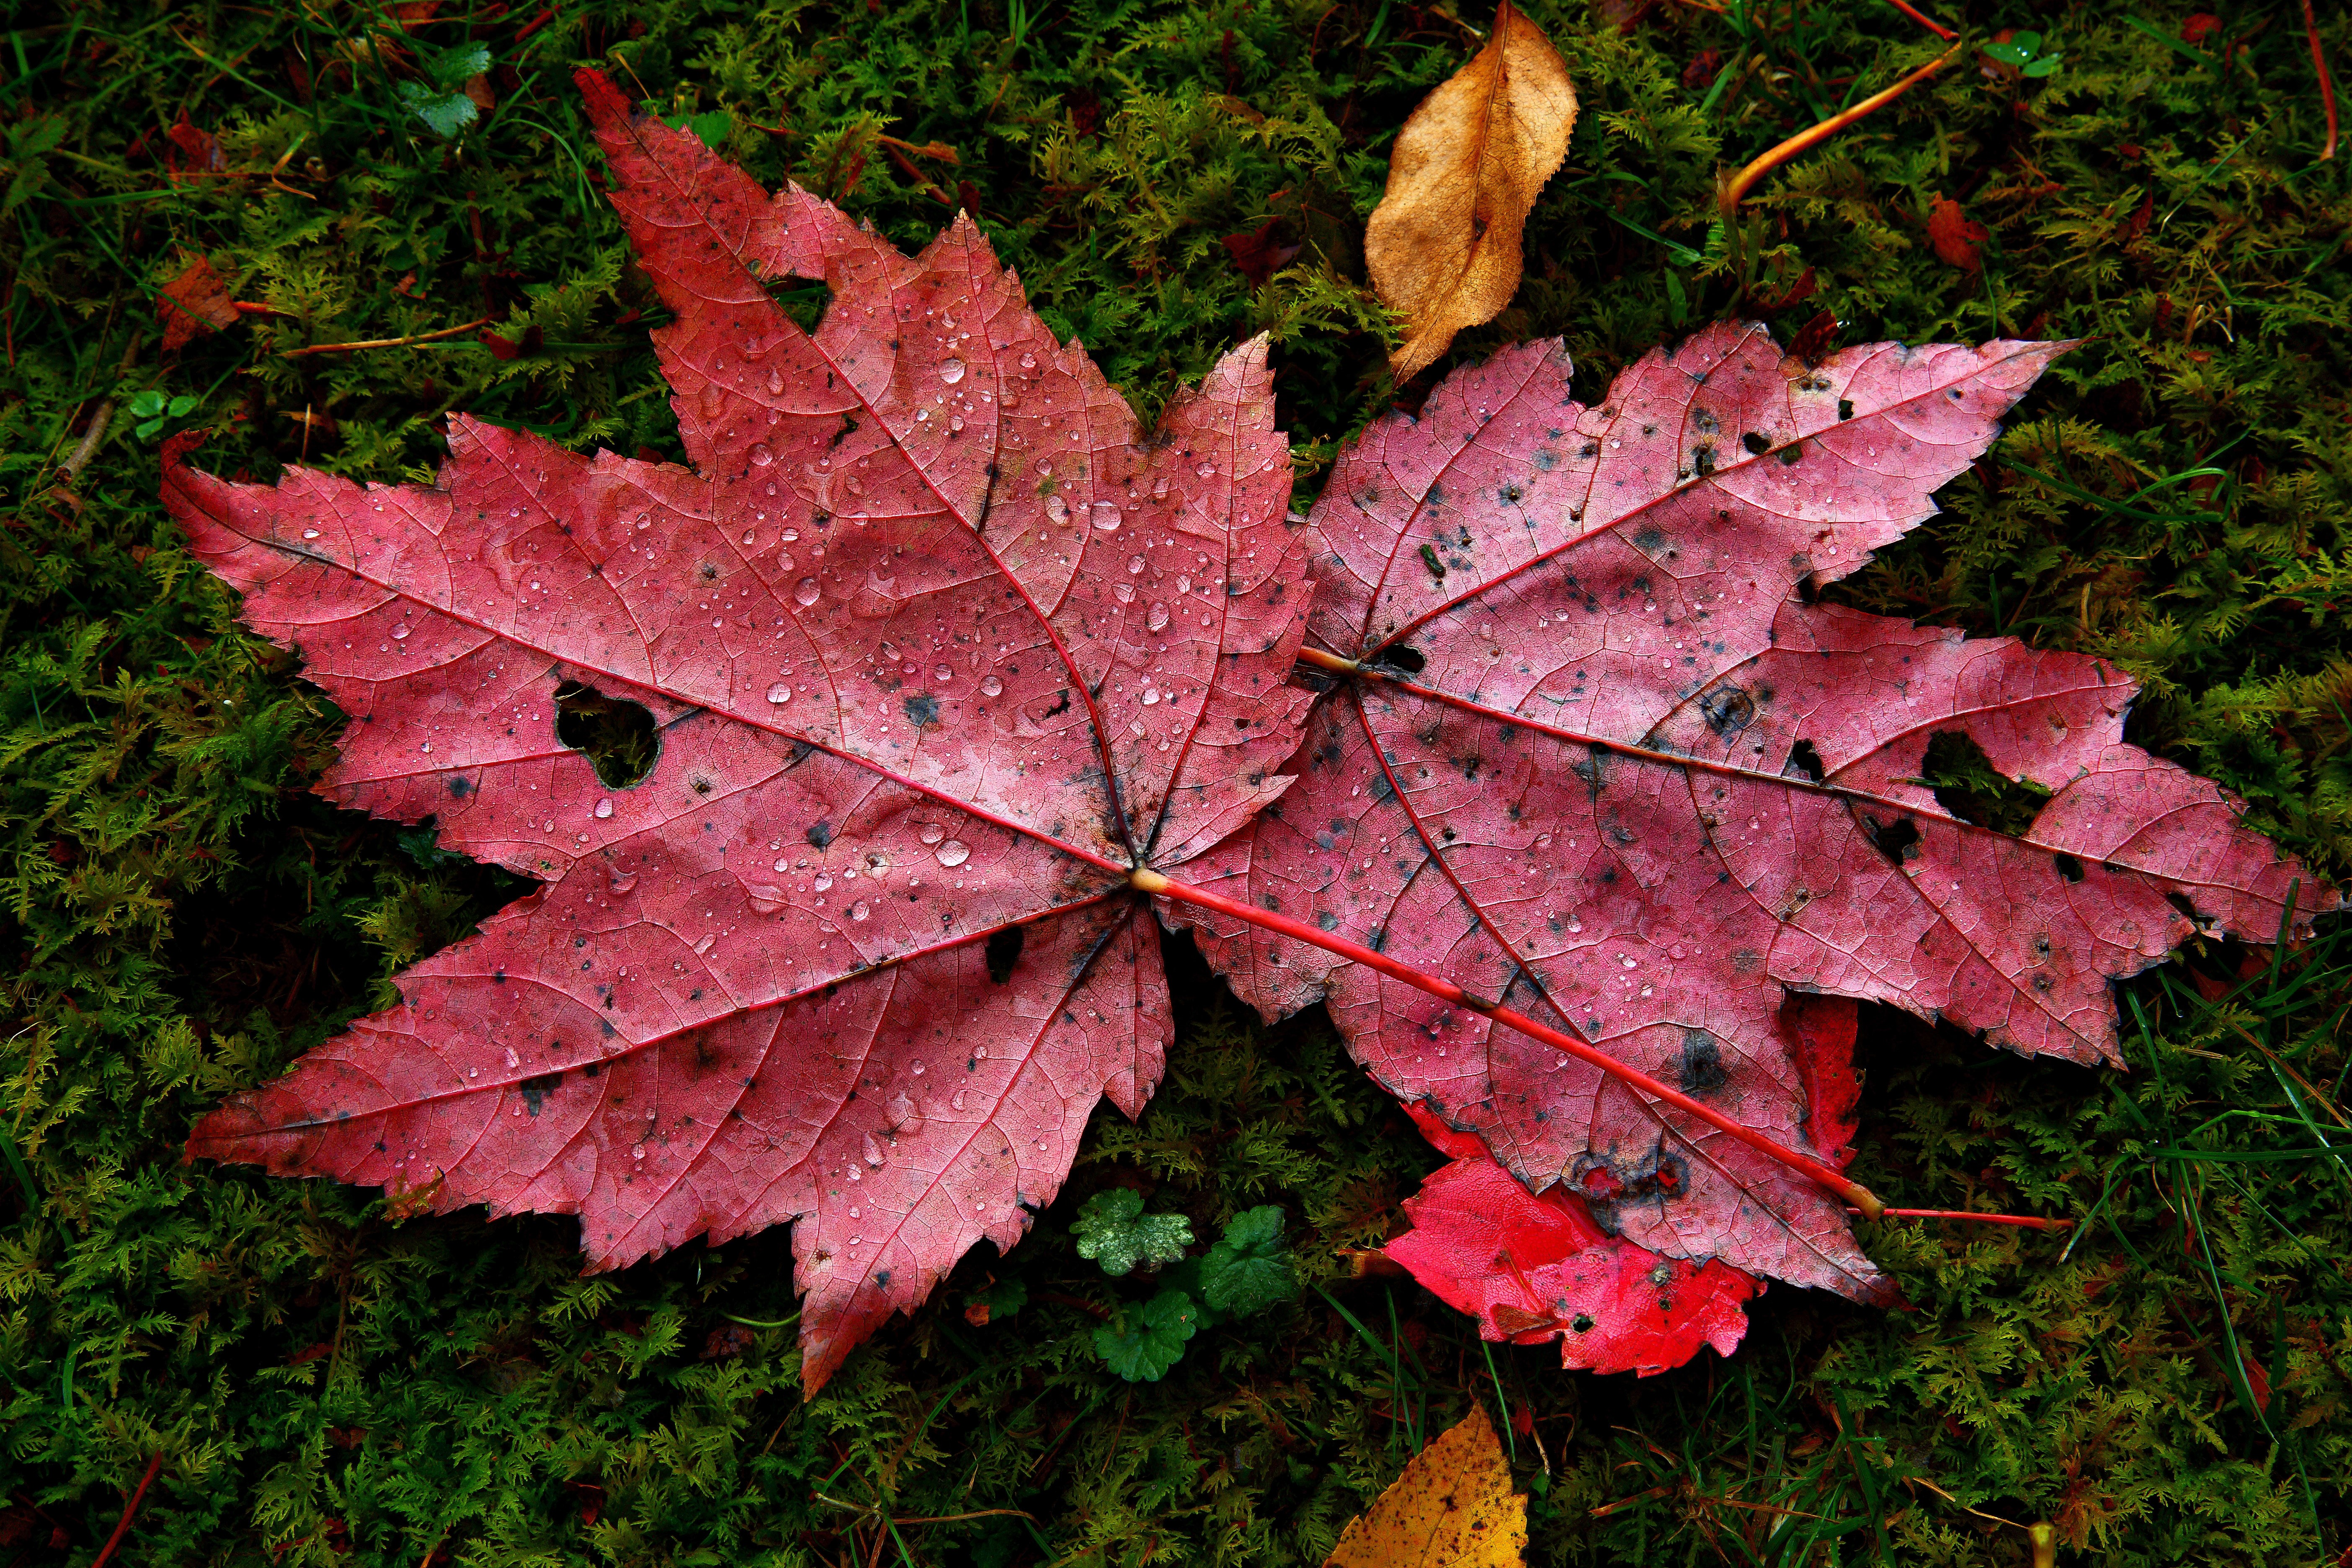 File:Red-autumn-maple-leaves-water-drops-moss